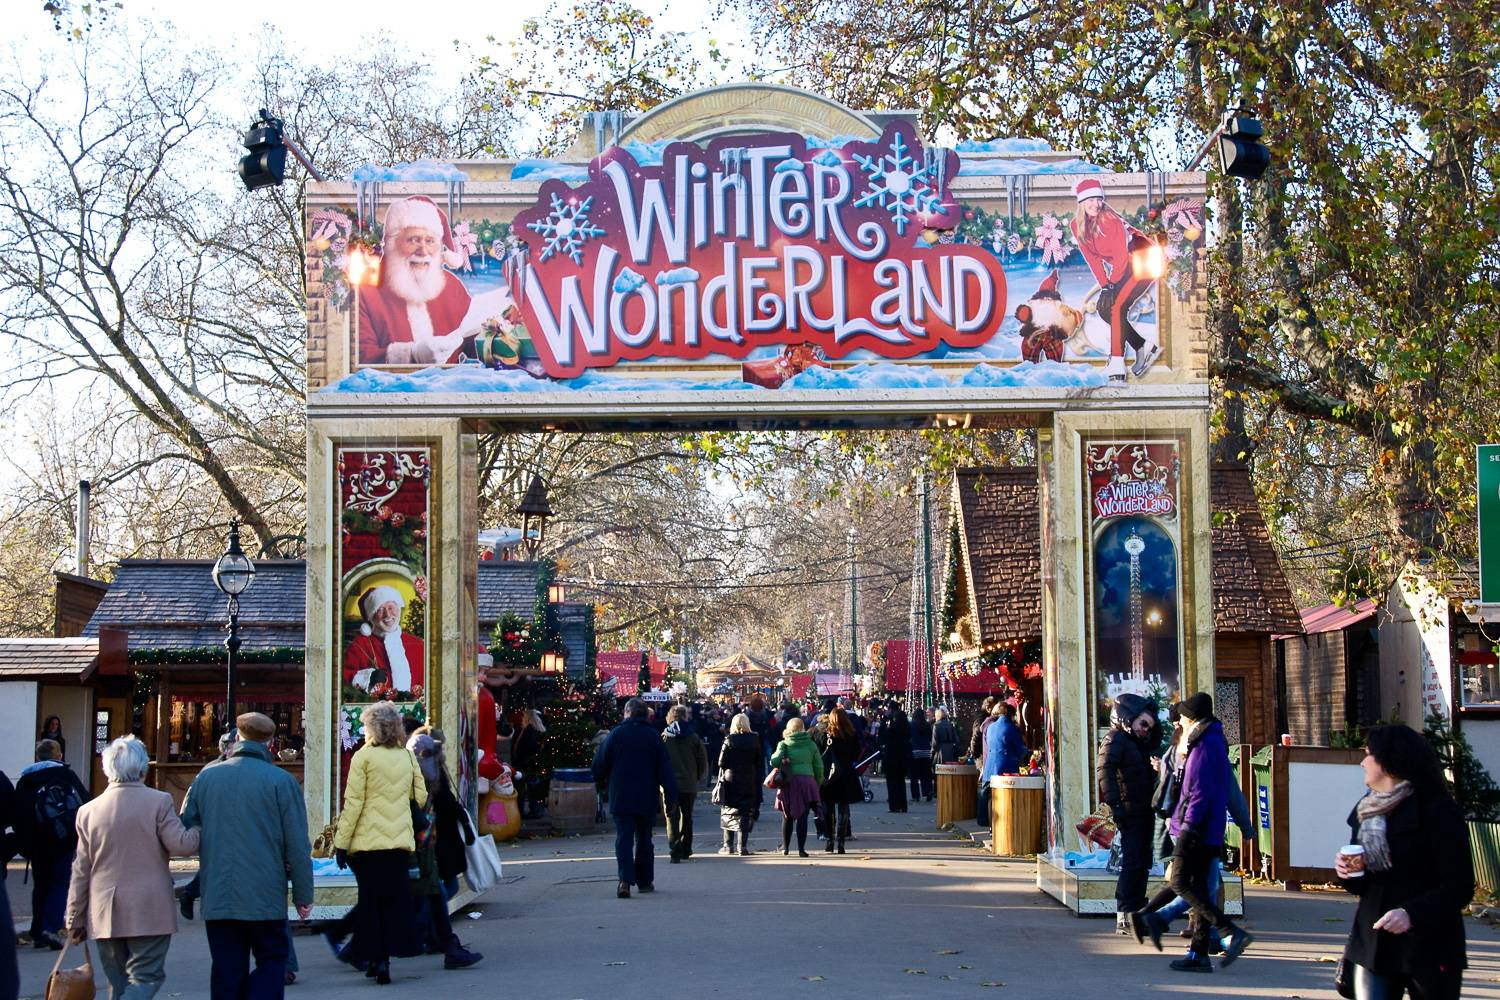 Image of gates to Hyde Park Winter Wonderland holiday fair in London.